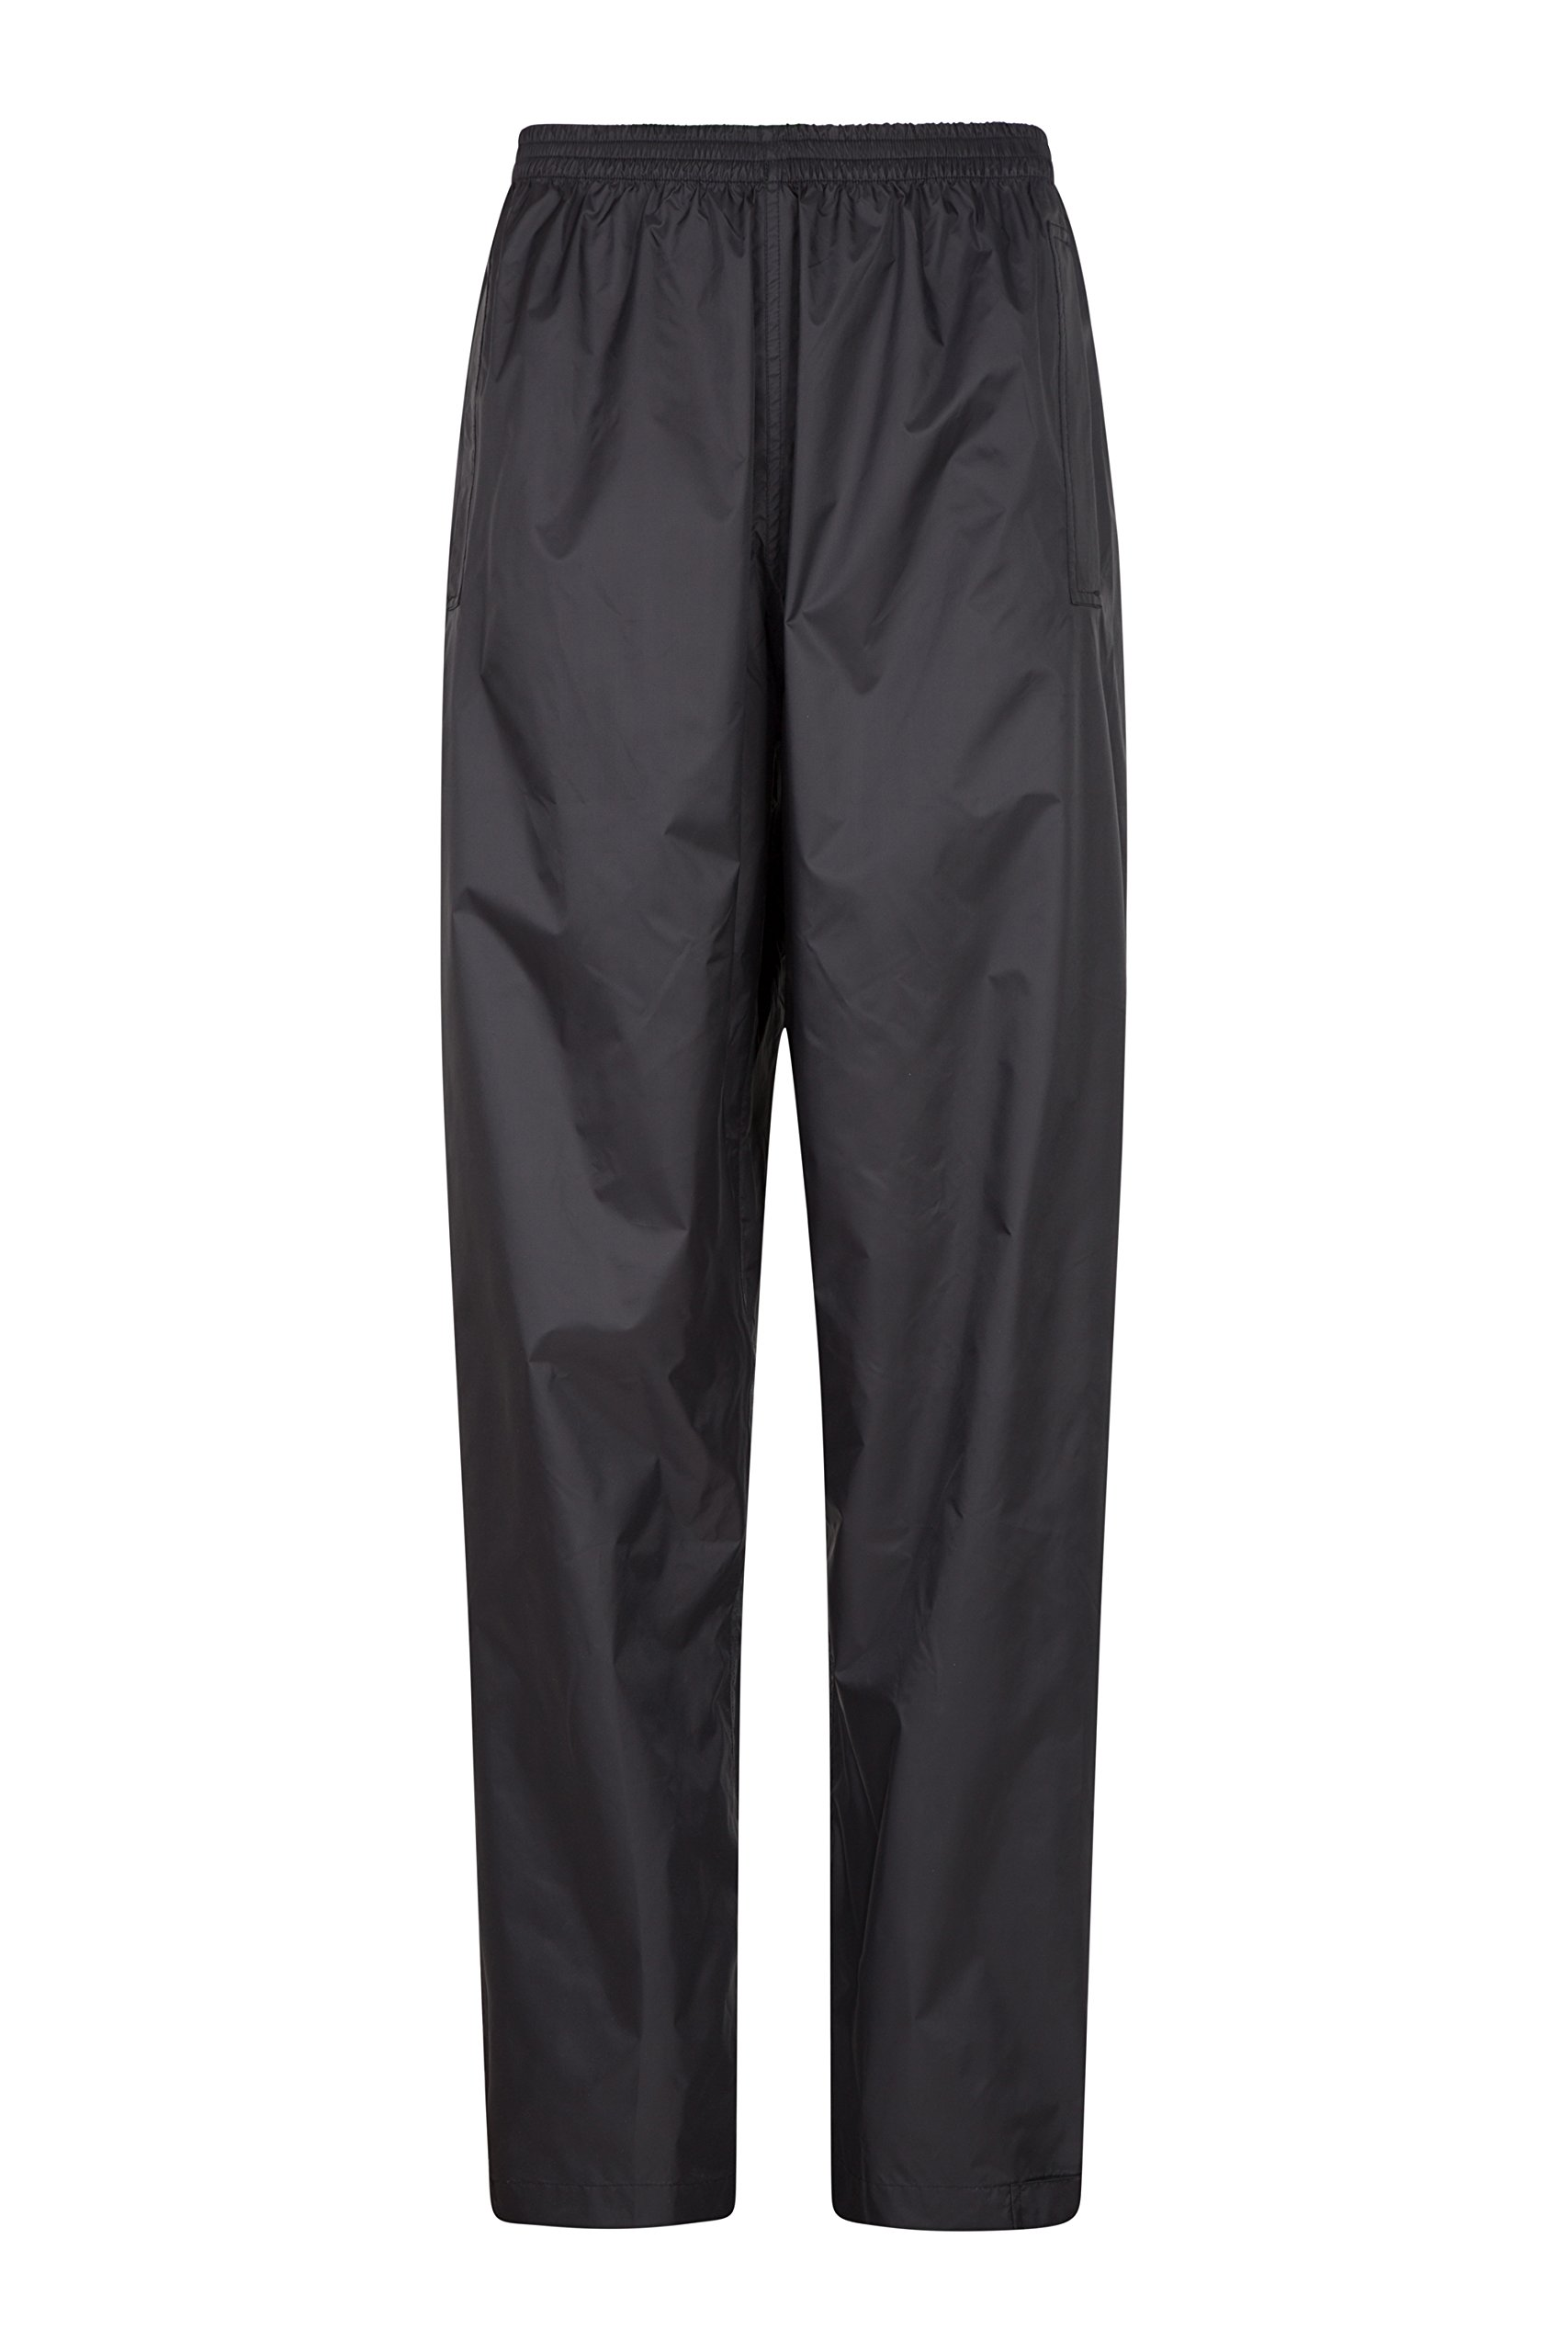 Mountain Warehouse Pakka Womens Rain Pants -Waterproof Ladies Pants Black 6